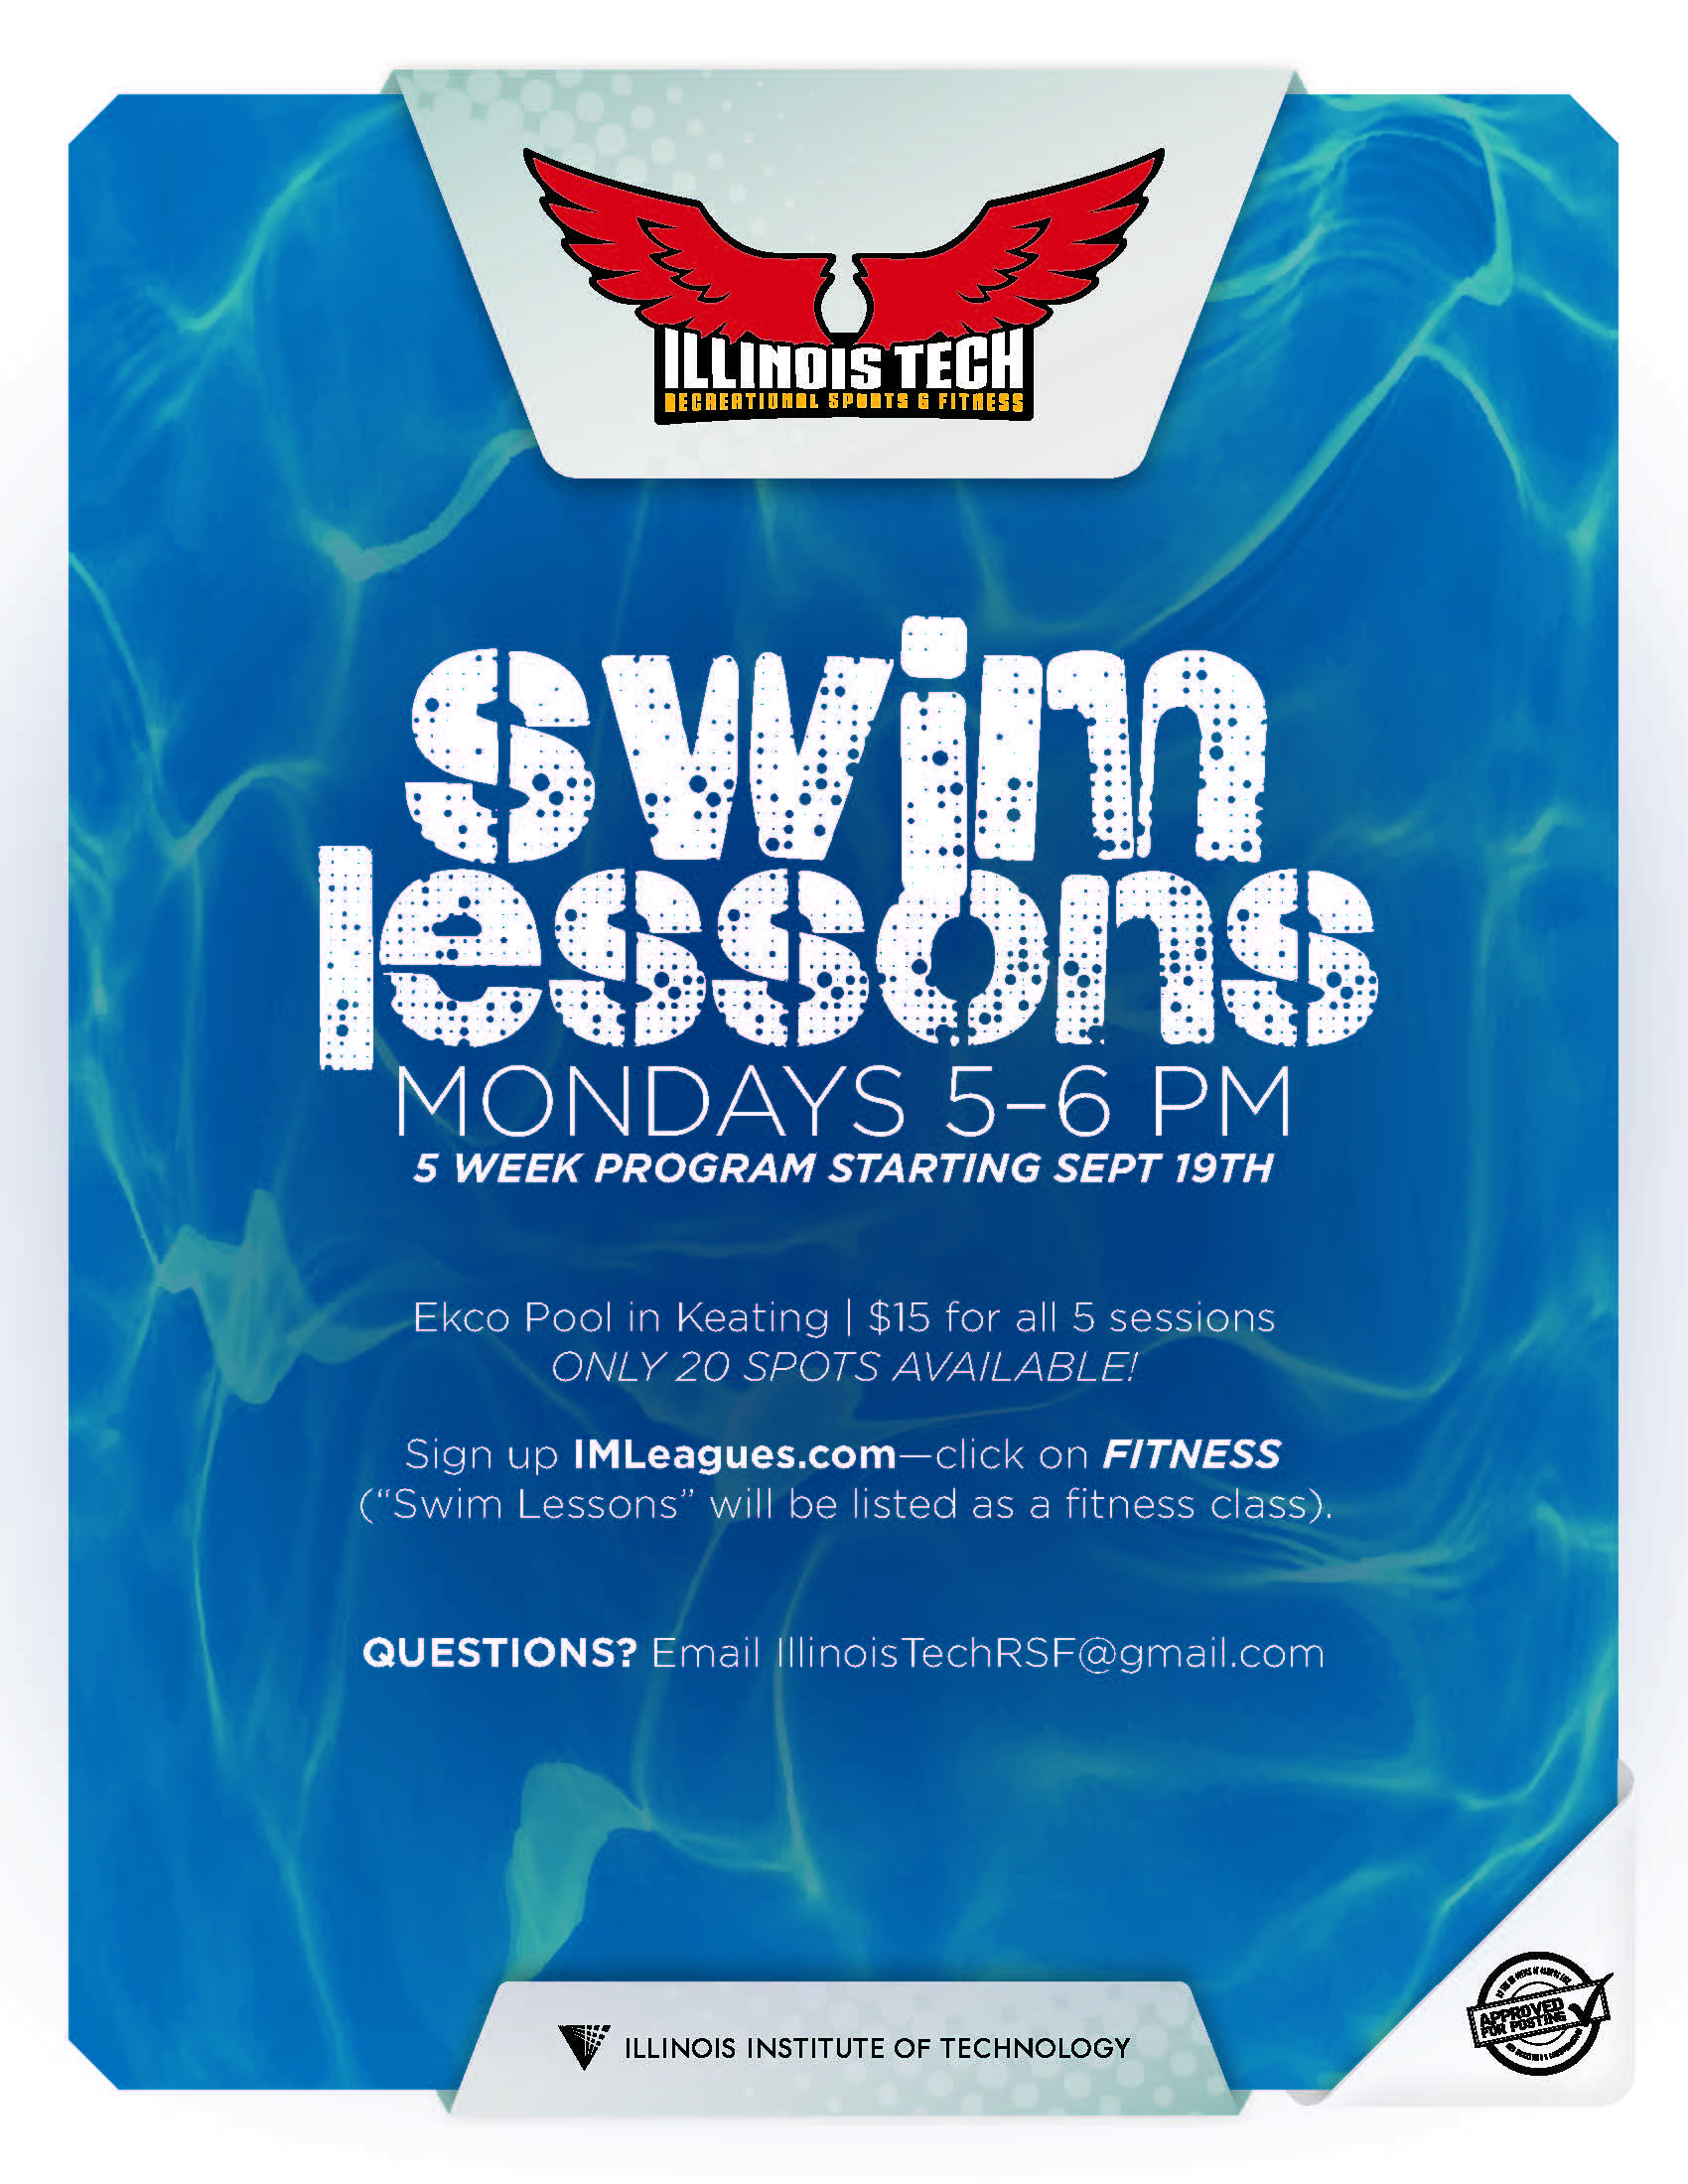 ATH_5351_Flyer_for_Swim_Lessons_r1 JPEG.jpg